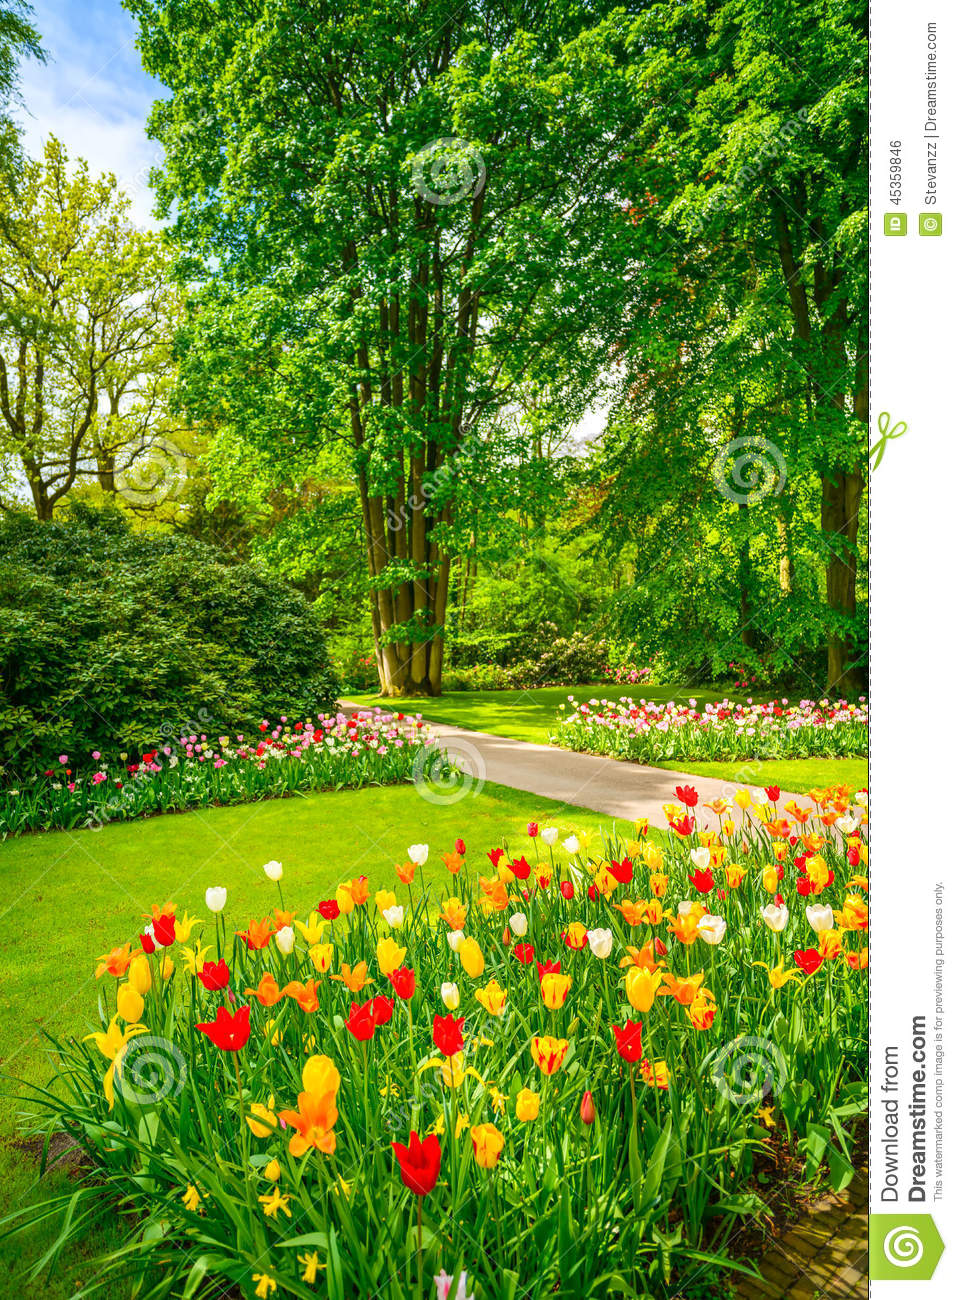 Garden in keukenhof tulip flowers and trees netherlands for Flowers and gardens pictures